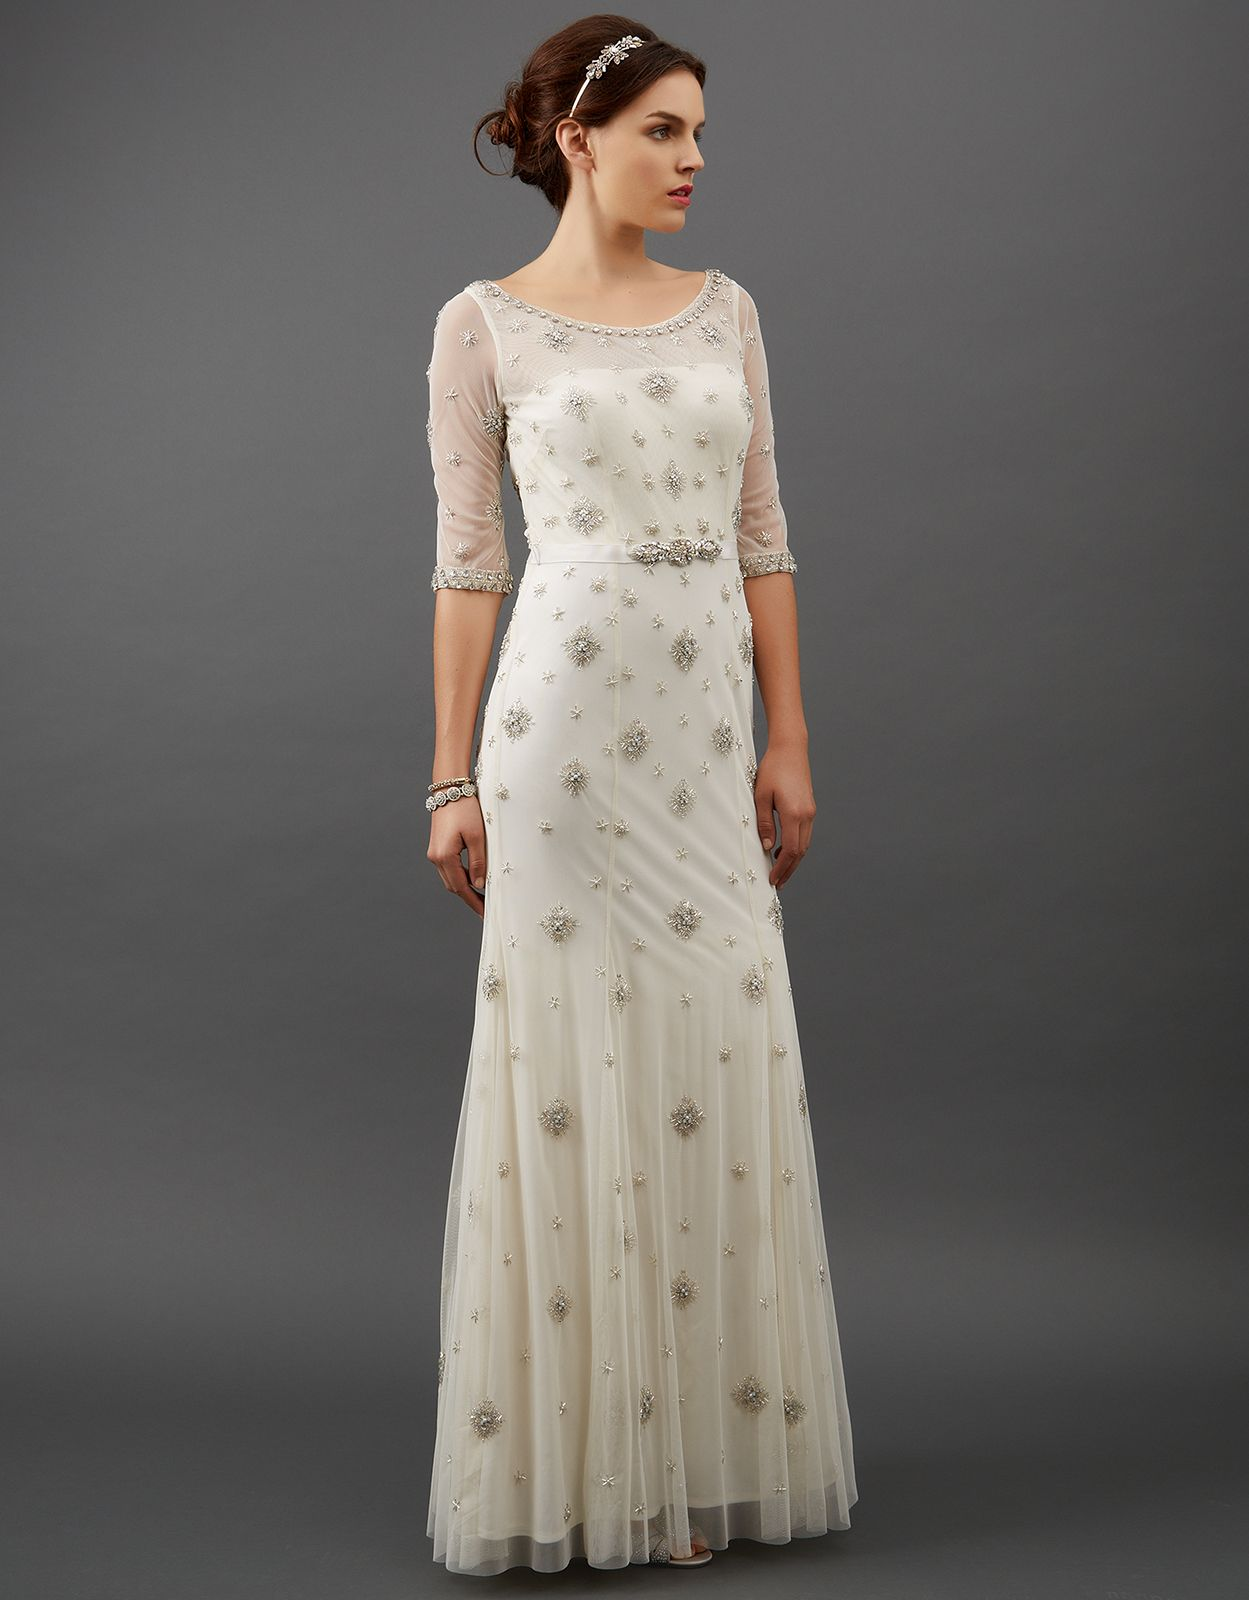 Starry Bridal Dress $1,225.00 from #Monsoon | Our Wedding ...